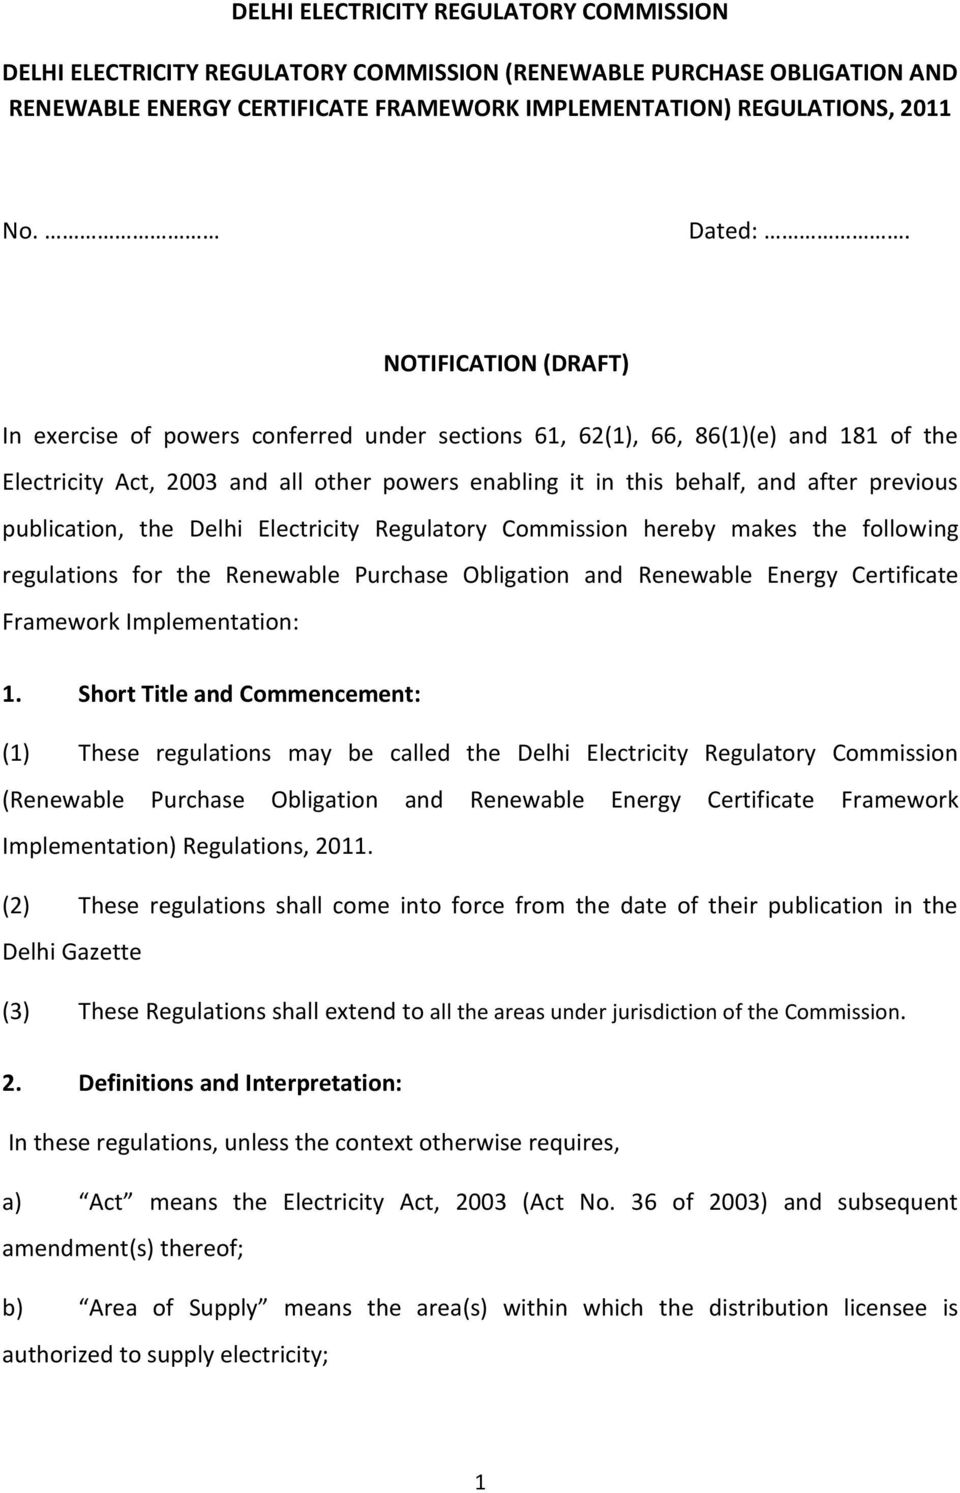 publication, the Delhi Electricity Regulatory Commission hereby makes the following regulations for the Renewable Purchase Obligation and Renewable Energy Certificate Framework Implementation: 1.